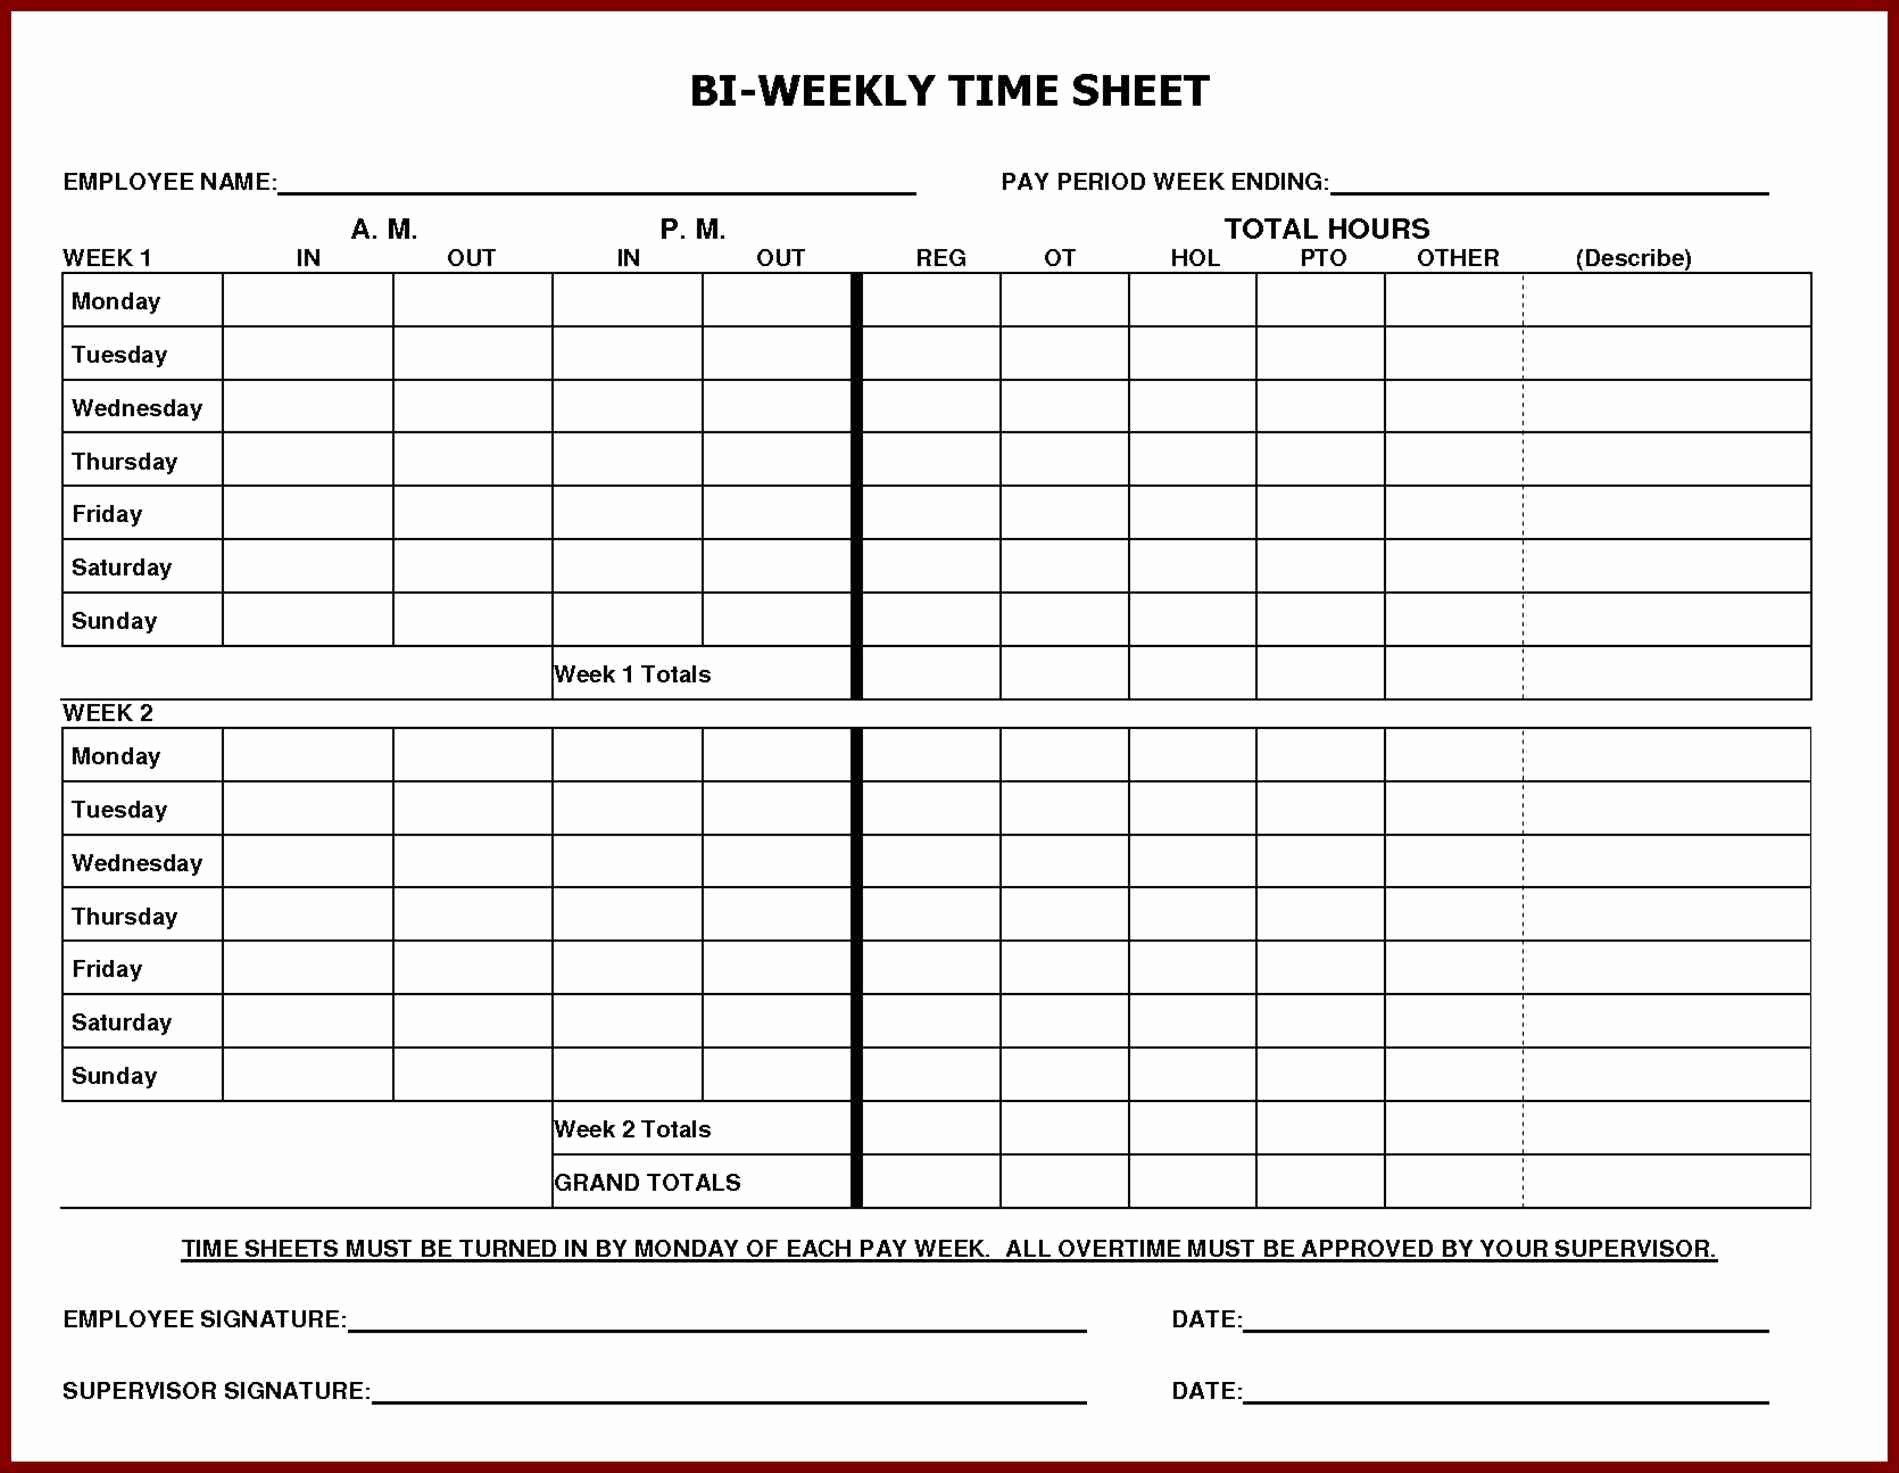 Employee Time Cards Template Free Awesome Daily Time Sheet Printable Printable 360 Degree